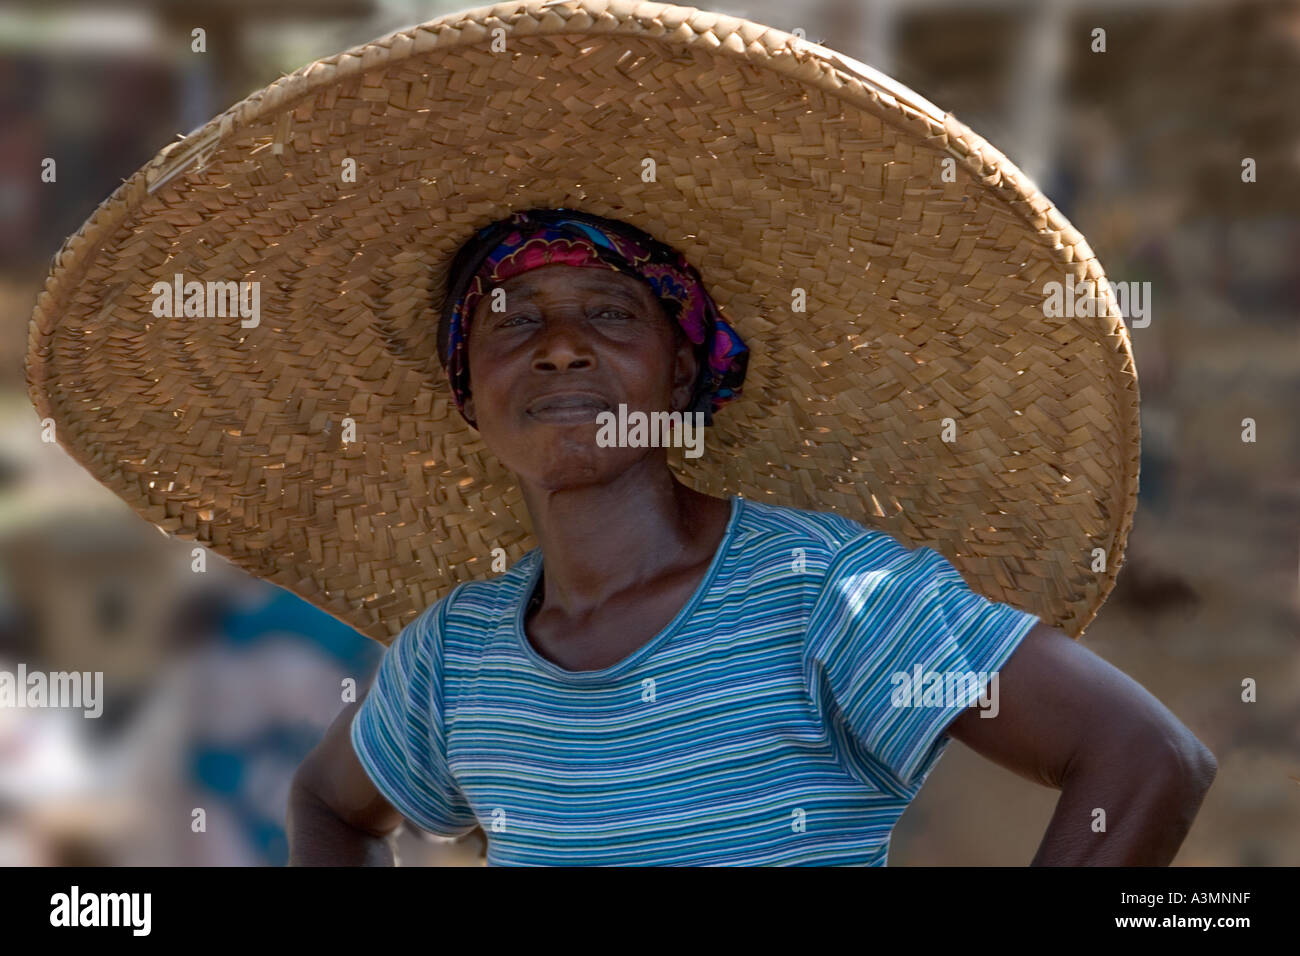 Portrait of woman market trader wearing large straw hat  Ghana, West Africa - Stock Image